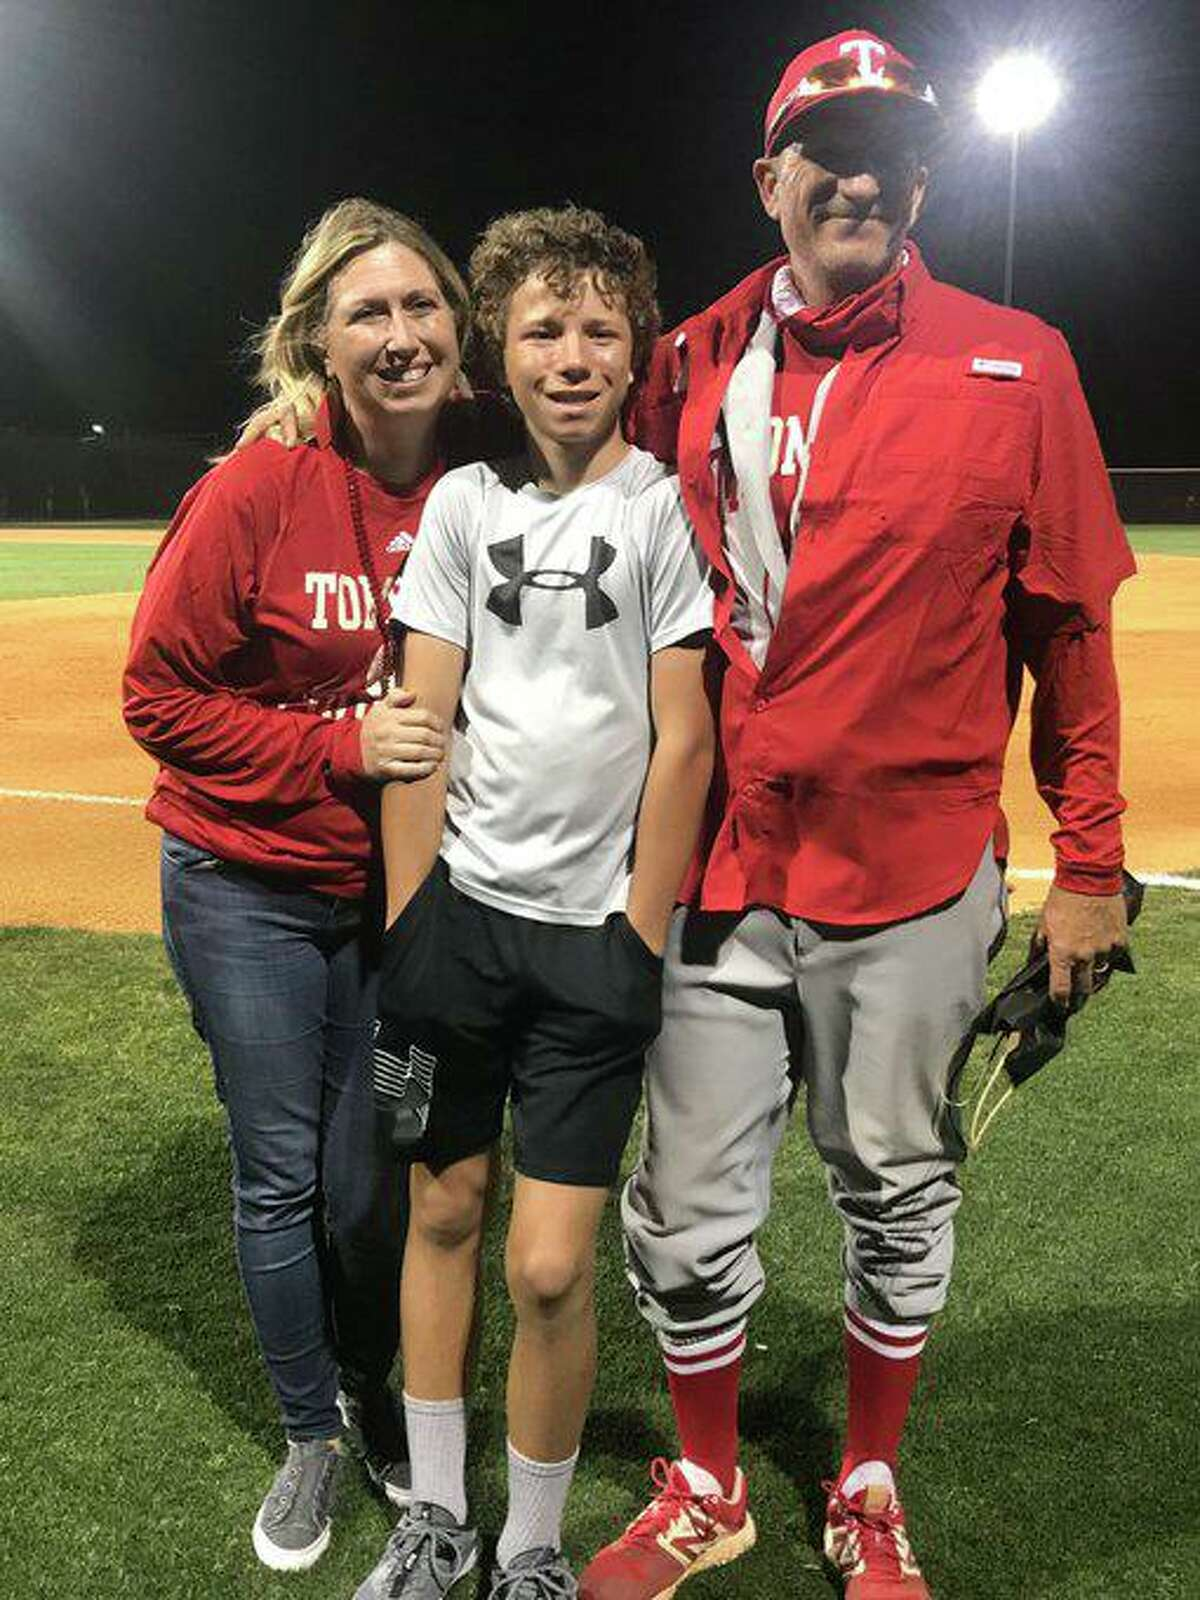 Tomball baseball coach Doug Rush is joined by his wife and son. Rush earned his 500th career win in a 2-0 victory against Klein Oak Tuesday, April 6, at Tomball High School.